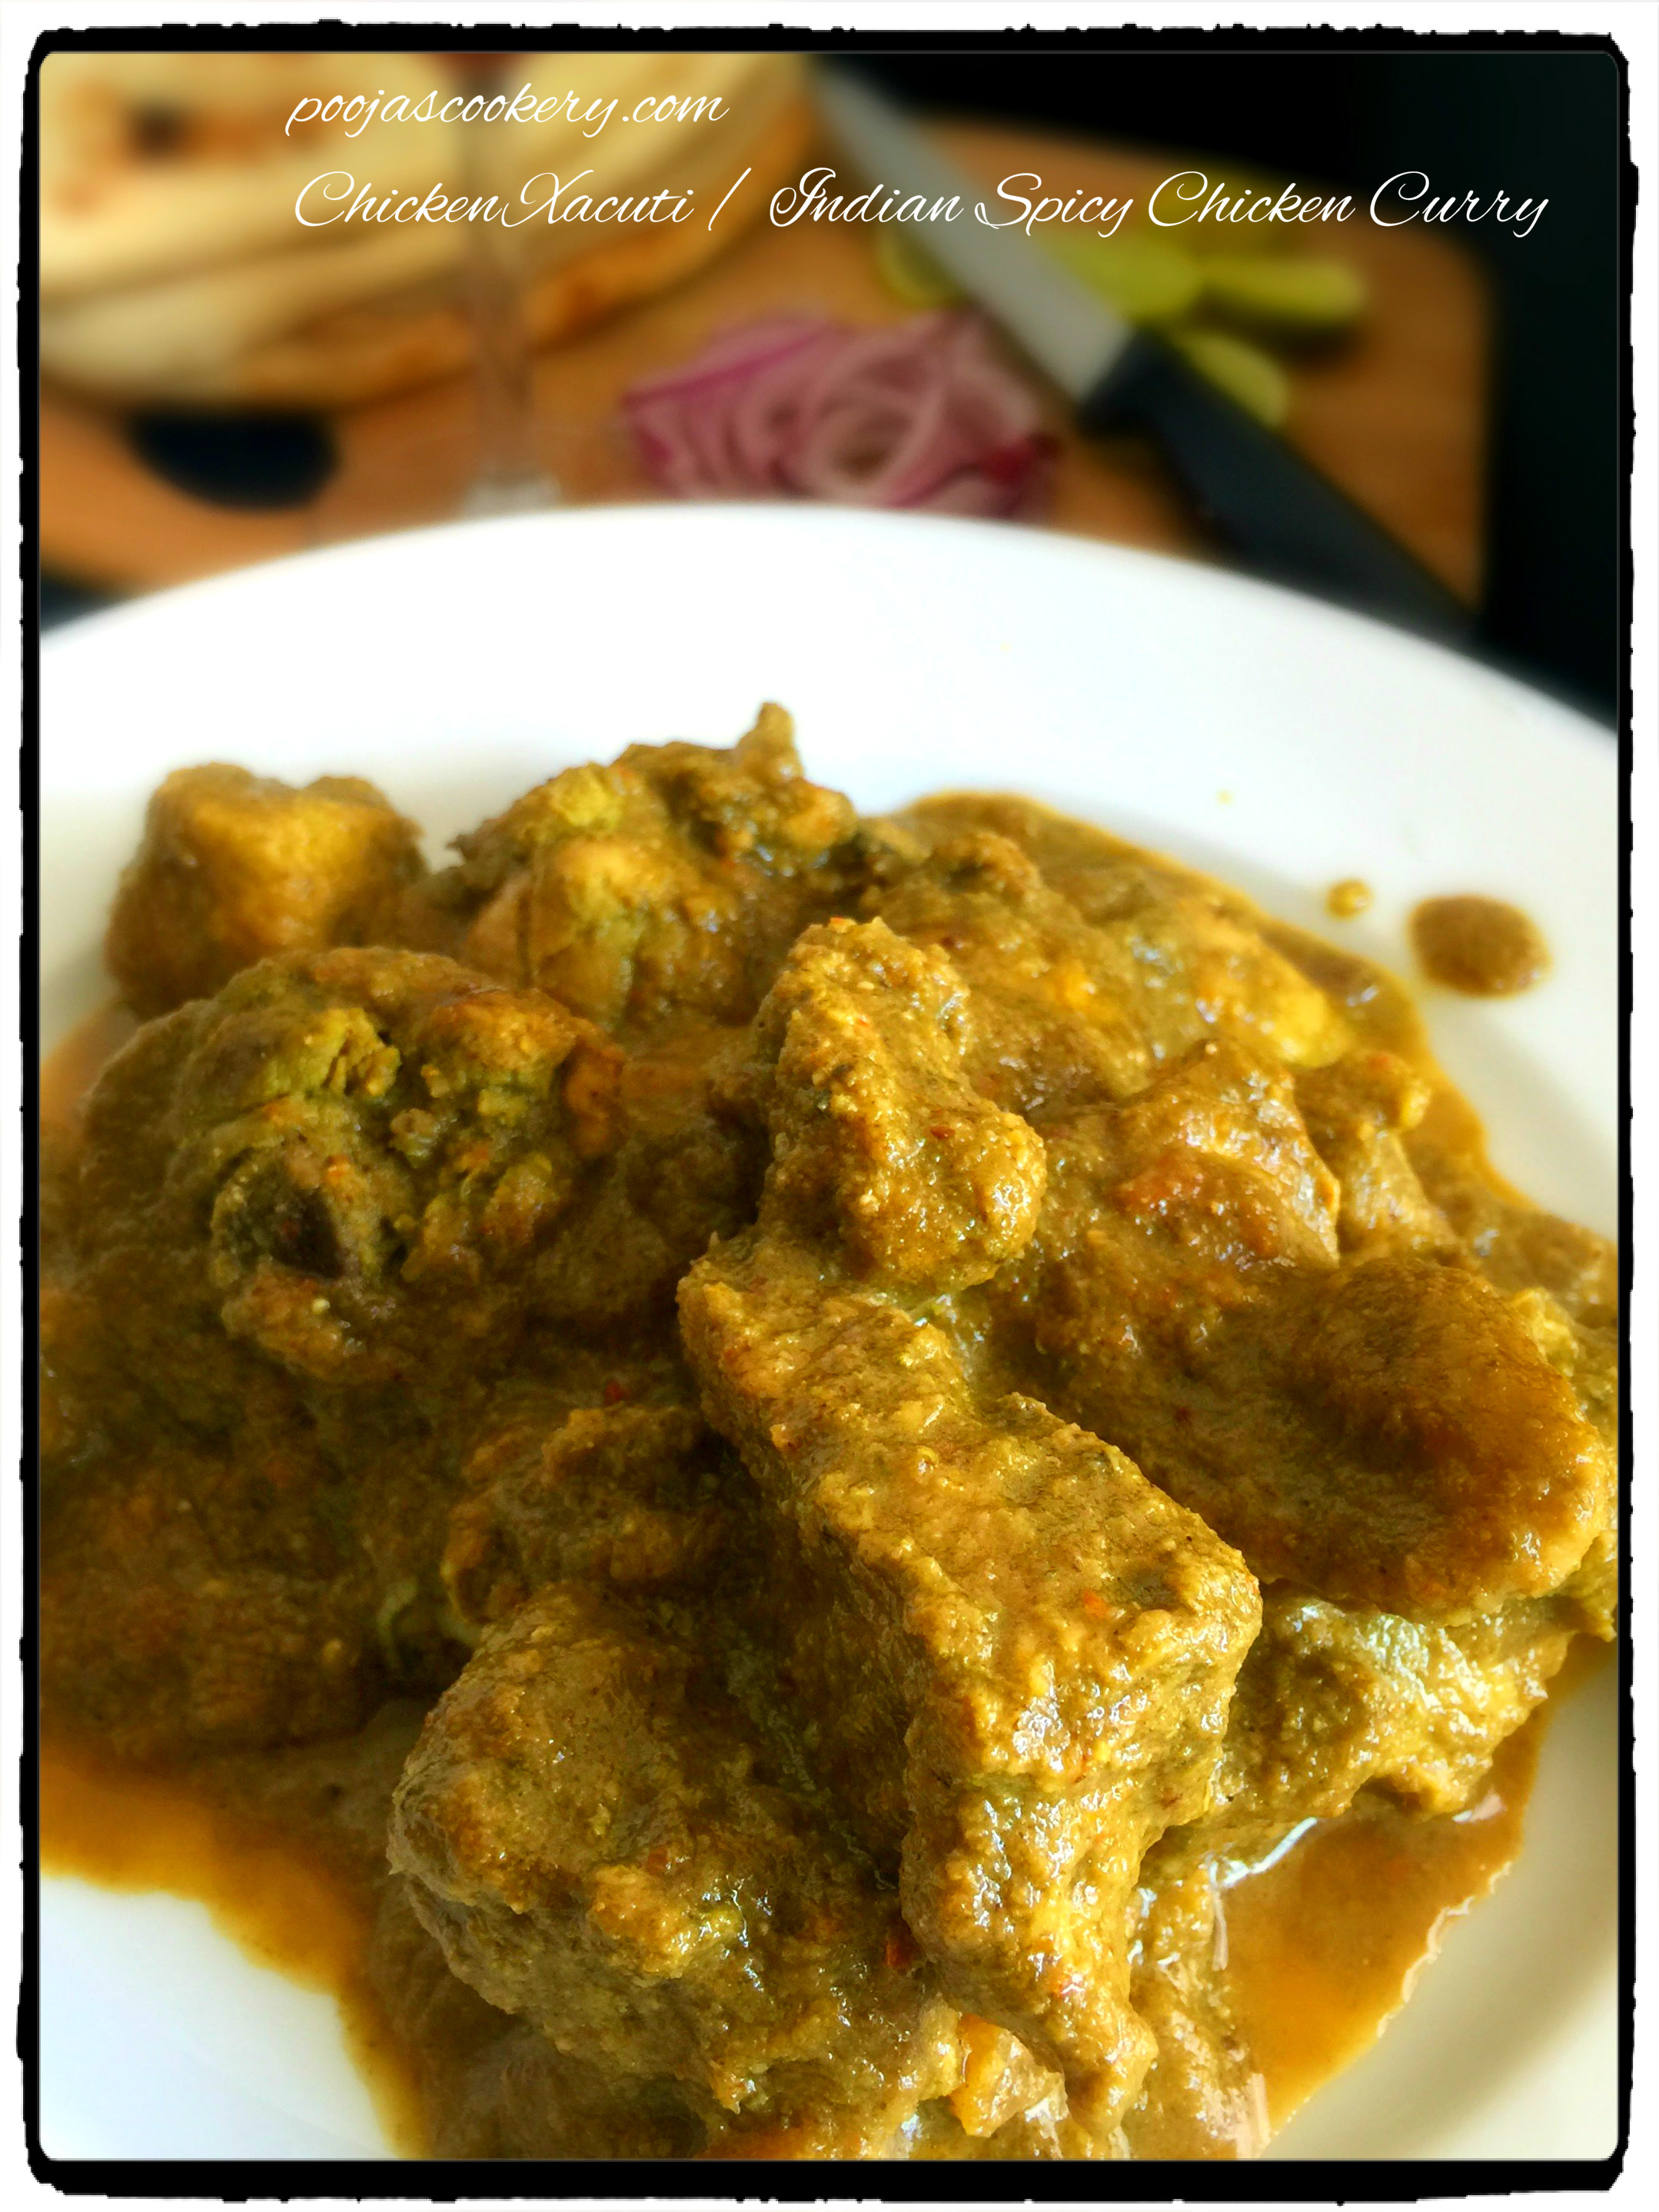 Chicken xacuti indian spicy chicken curry recipe recipe image forumfinder Gallery